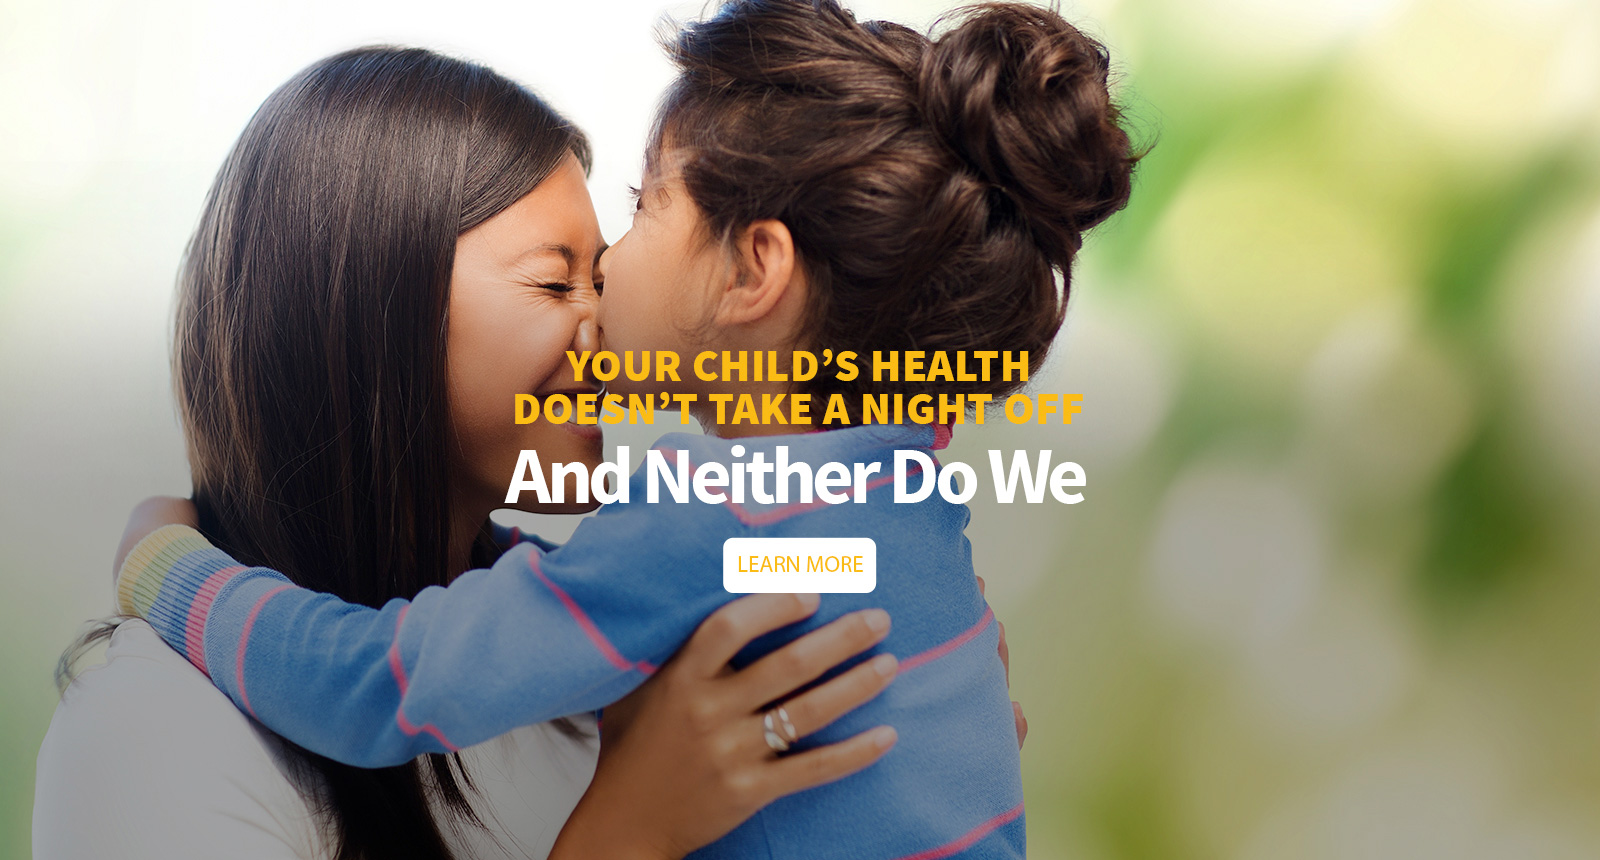 Your child's health doesn't take a night off